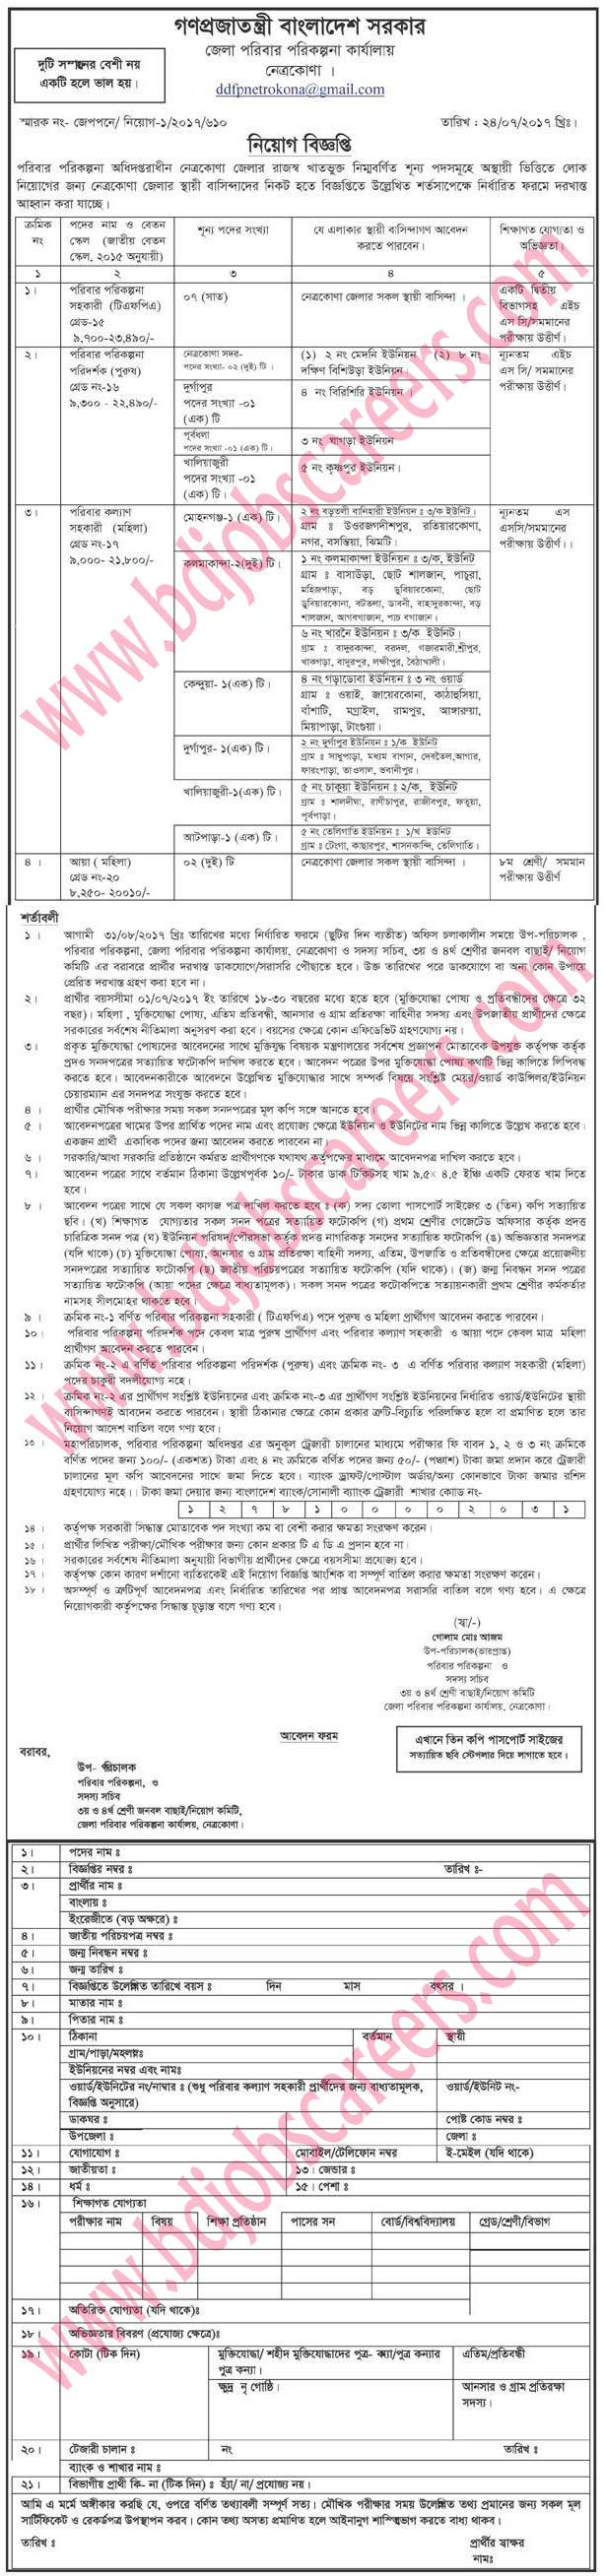 Netrakona District Family Planning Office Job Circular 2017